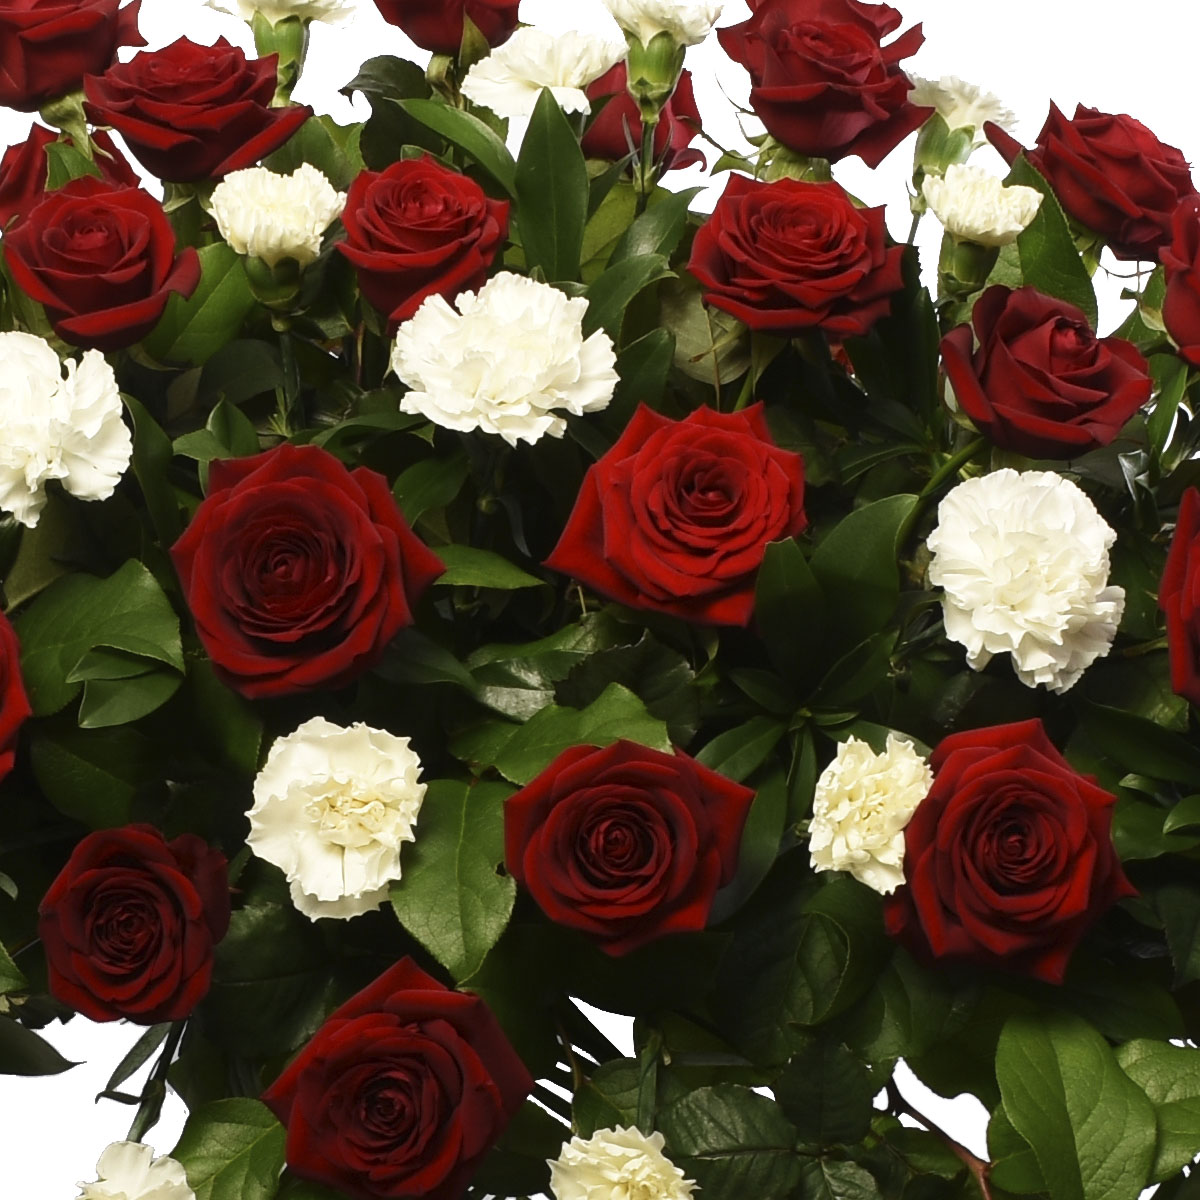 Funeral flower casket spray for delivery in Vancouver , Burnaby and Coquitlam with red roses and white carnations.